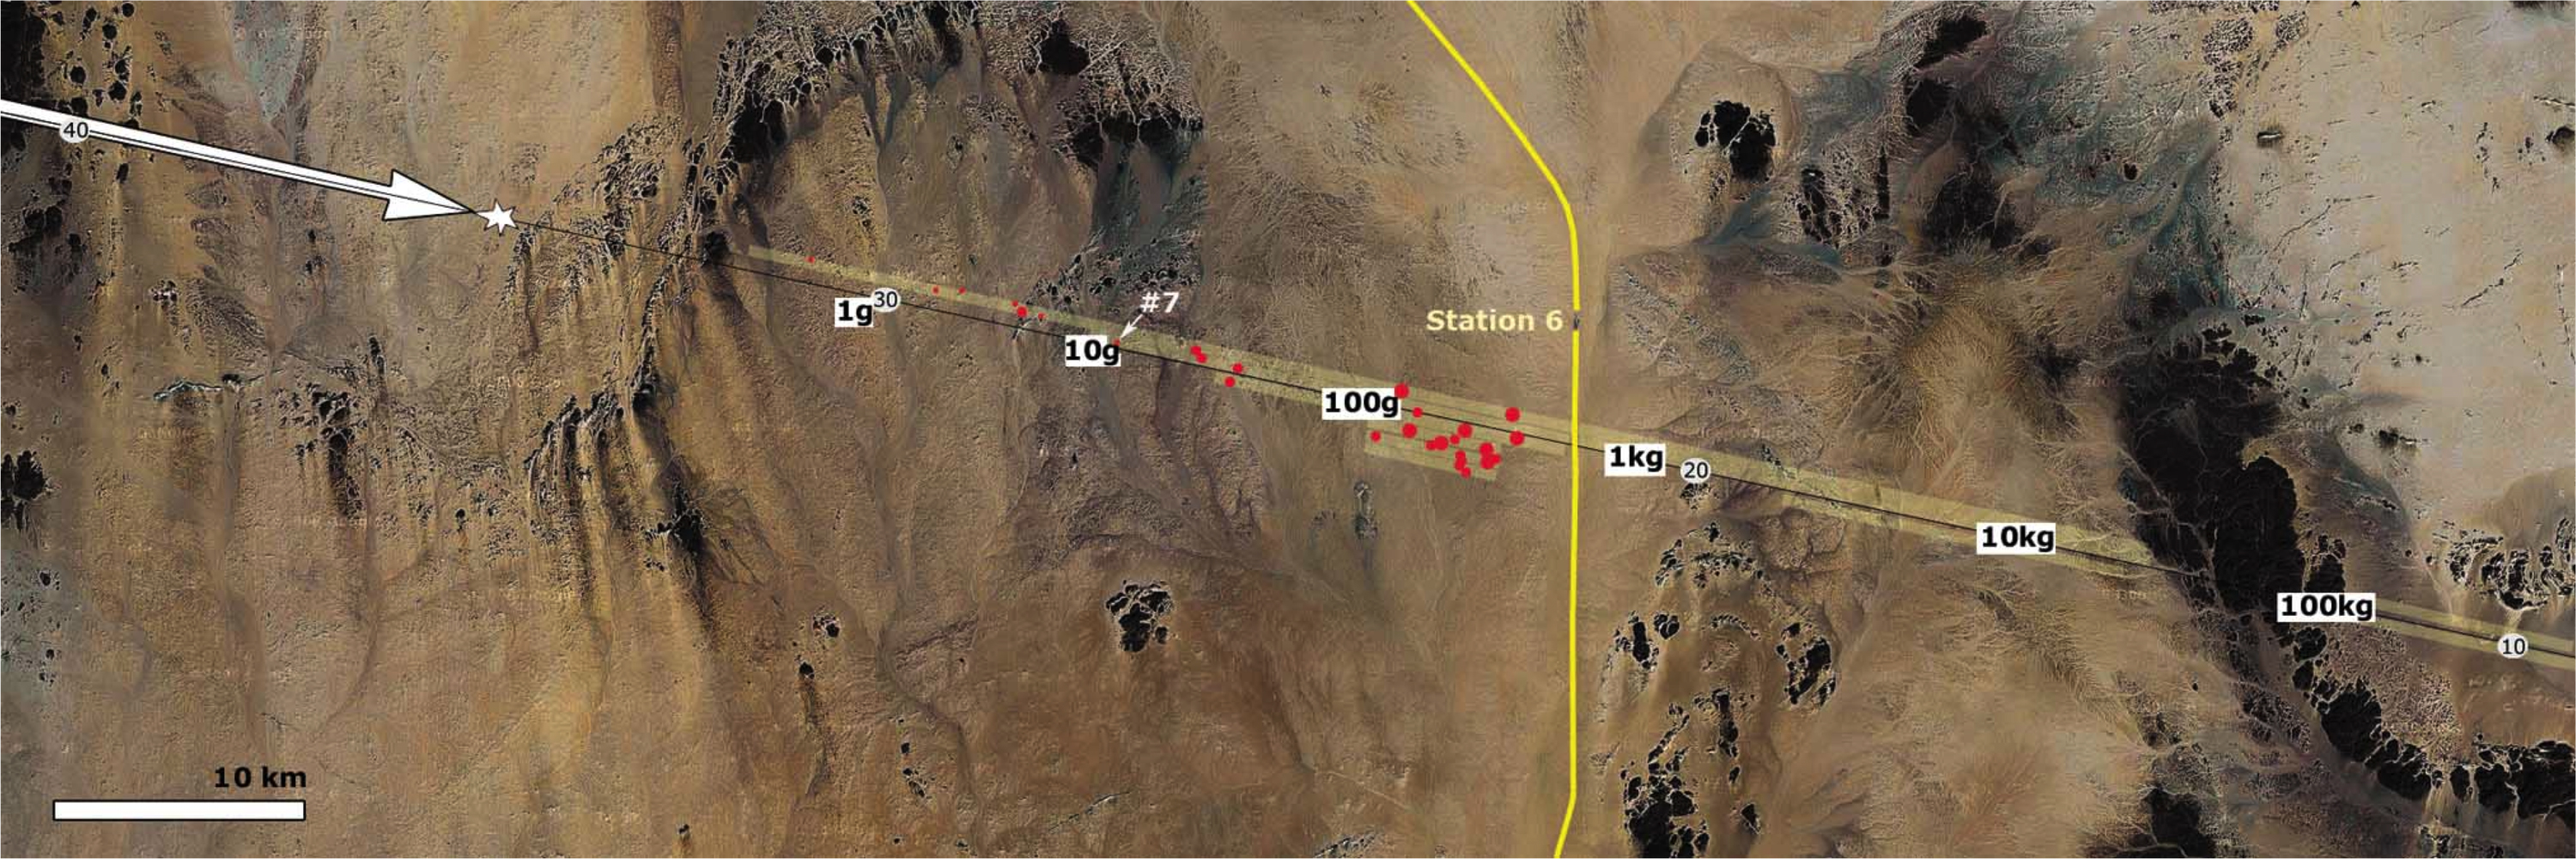 Graphic showing trajectory of meteor over desert.